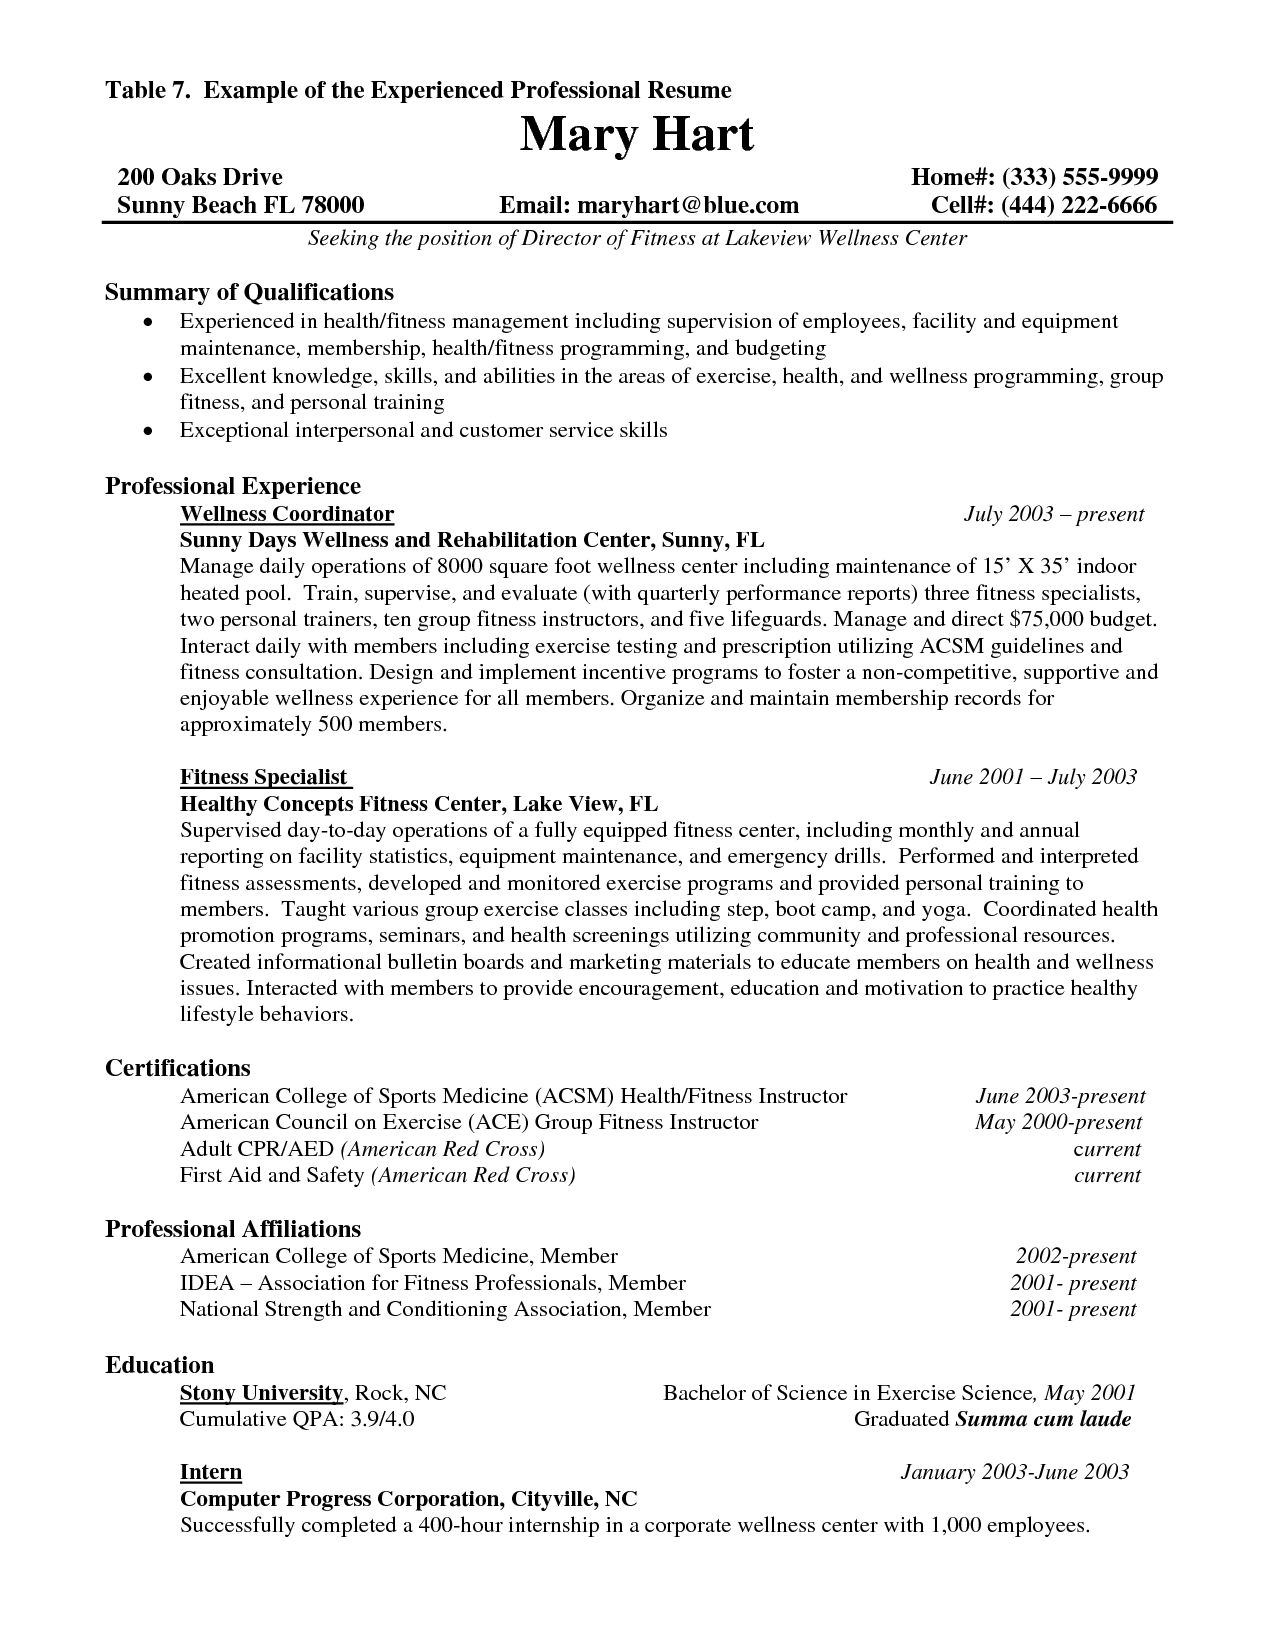 Resume Sample For Experienced Mesmerizing Resume Format For Experienced Professional  Resume Format And .